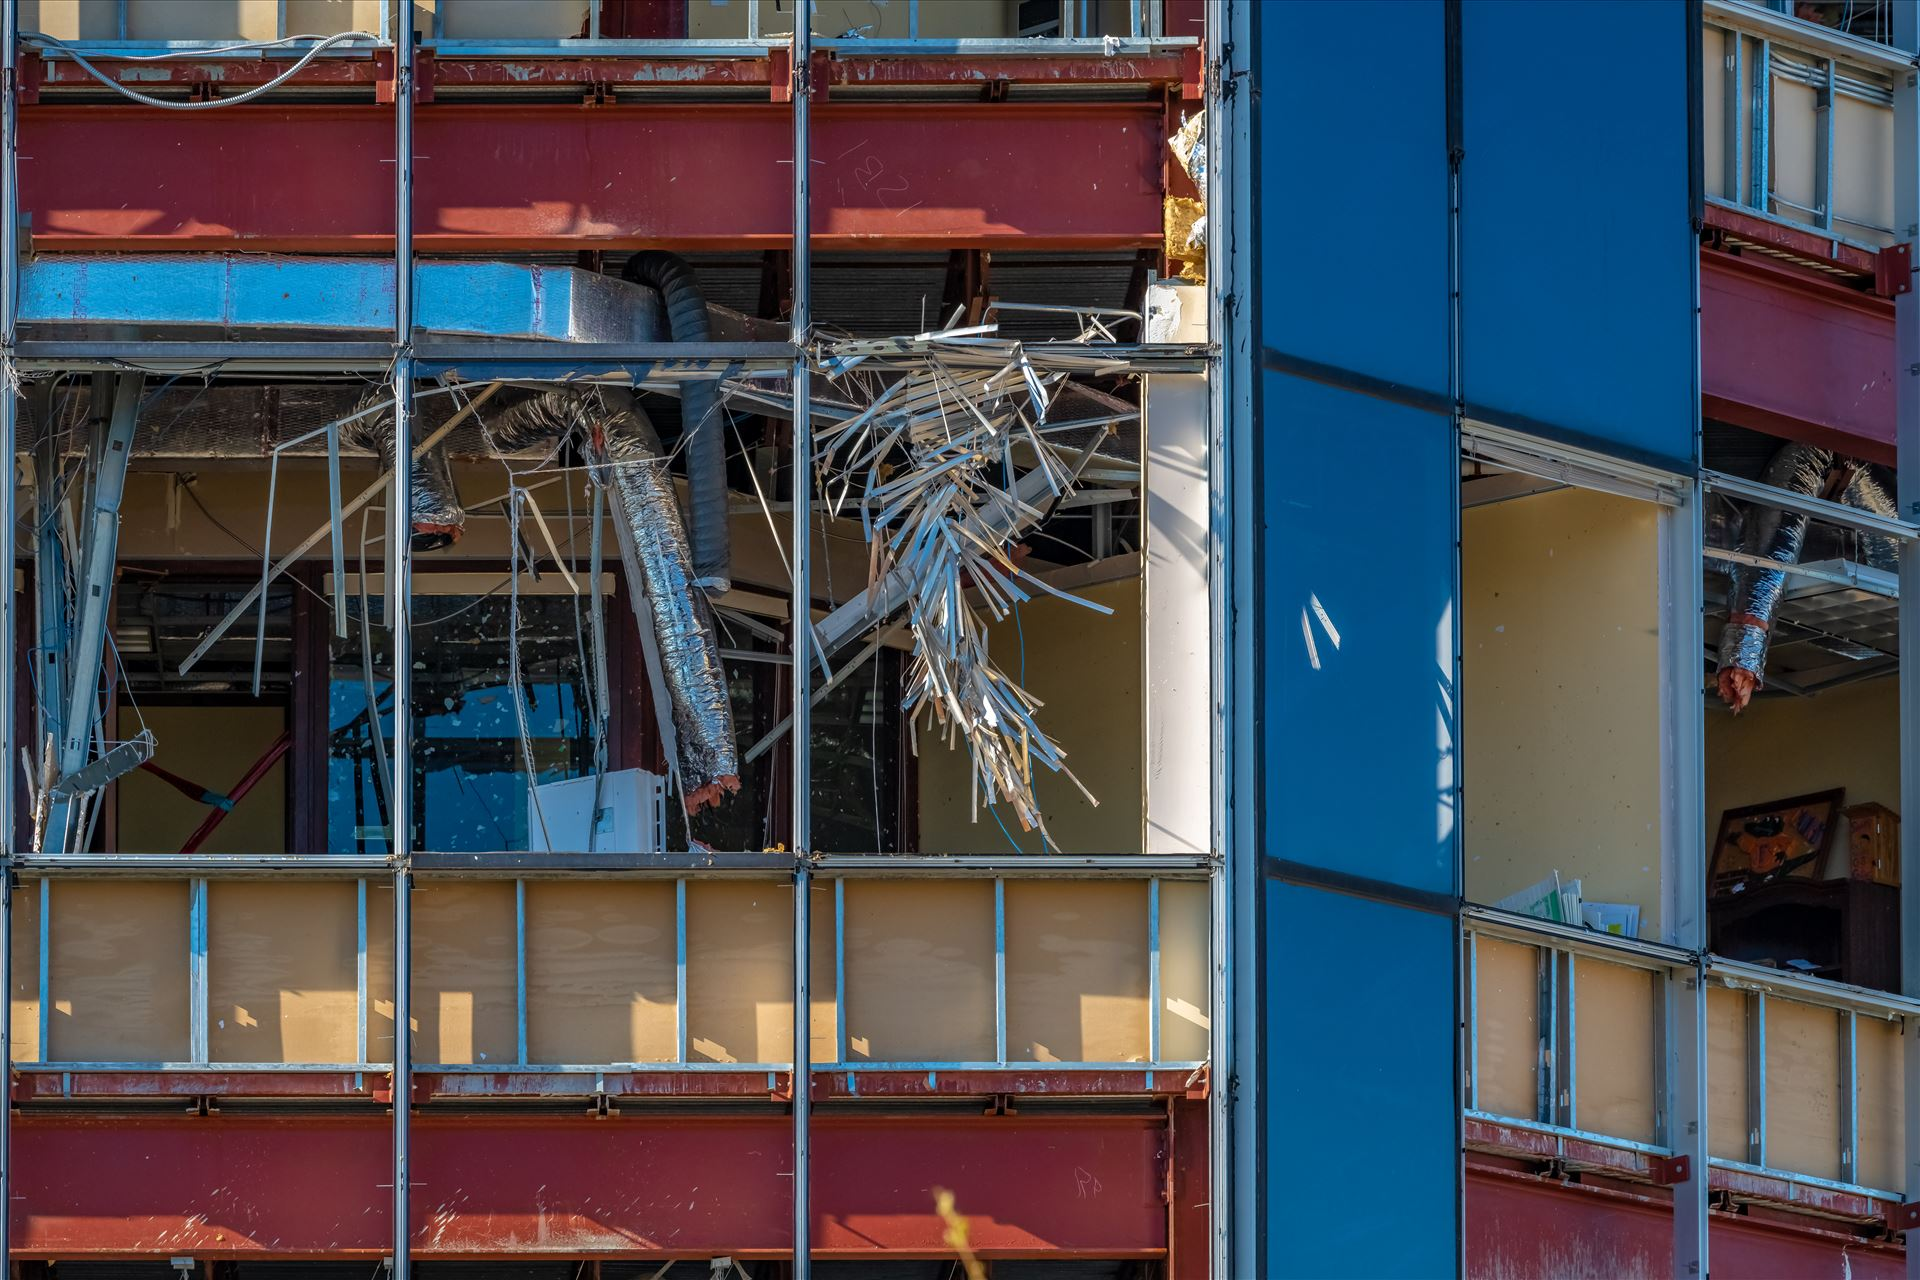 hurricane Michael Hurricane Michael destroys First Federal Bank of Florida in Panama City, Florida, located on 23rd street. by Terry Kelly Photography